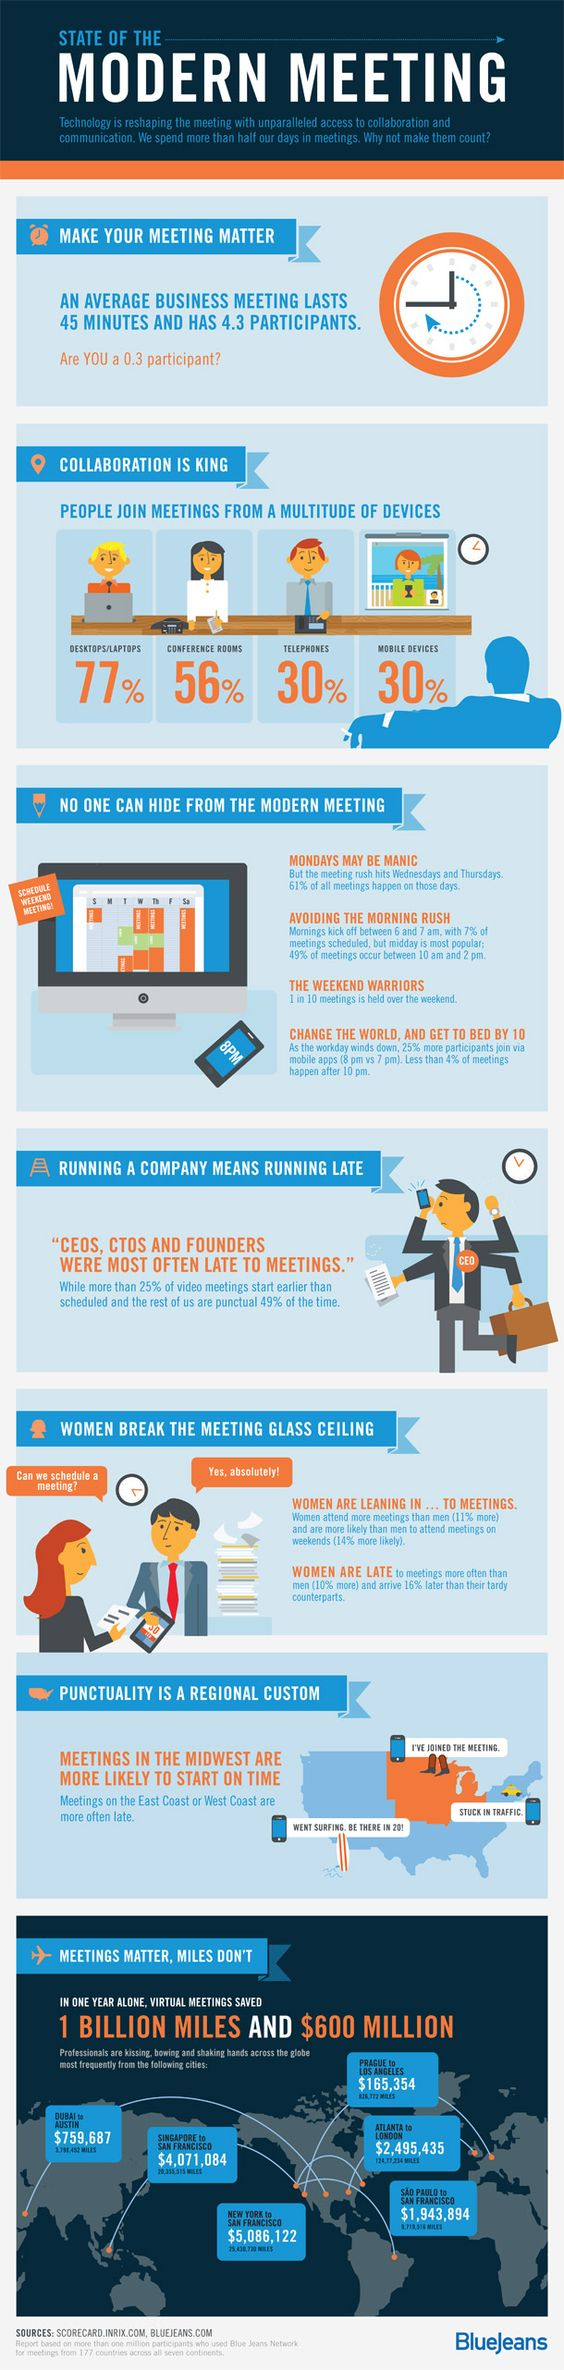 How to Run a Better Meeting #Infographic #meetings